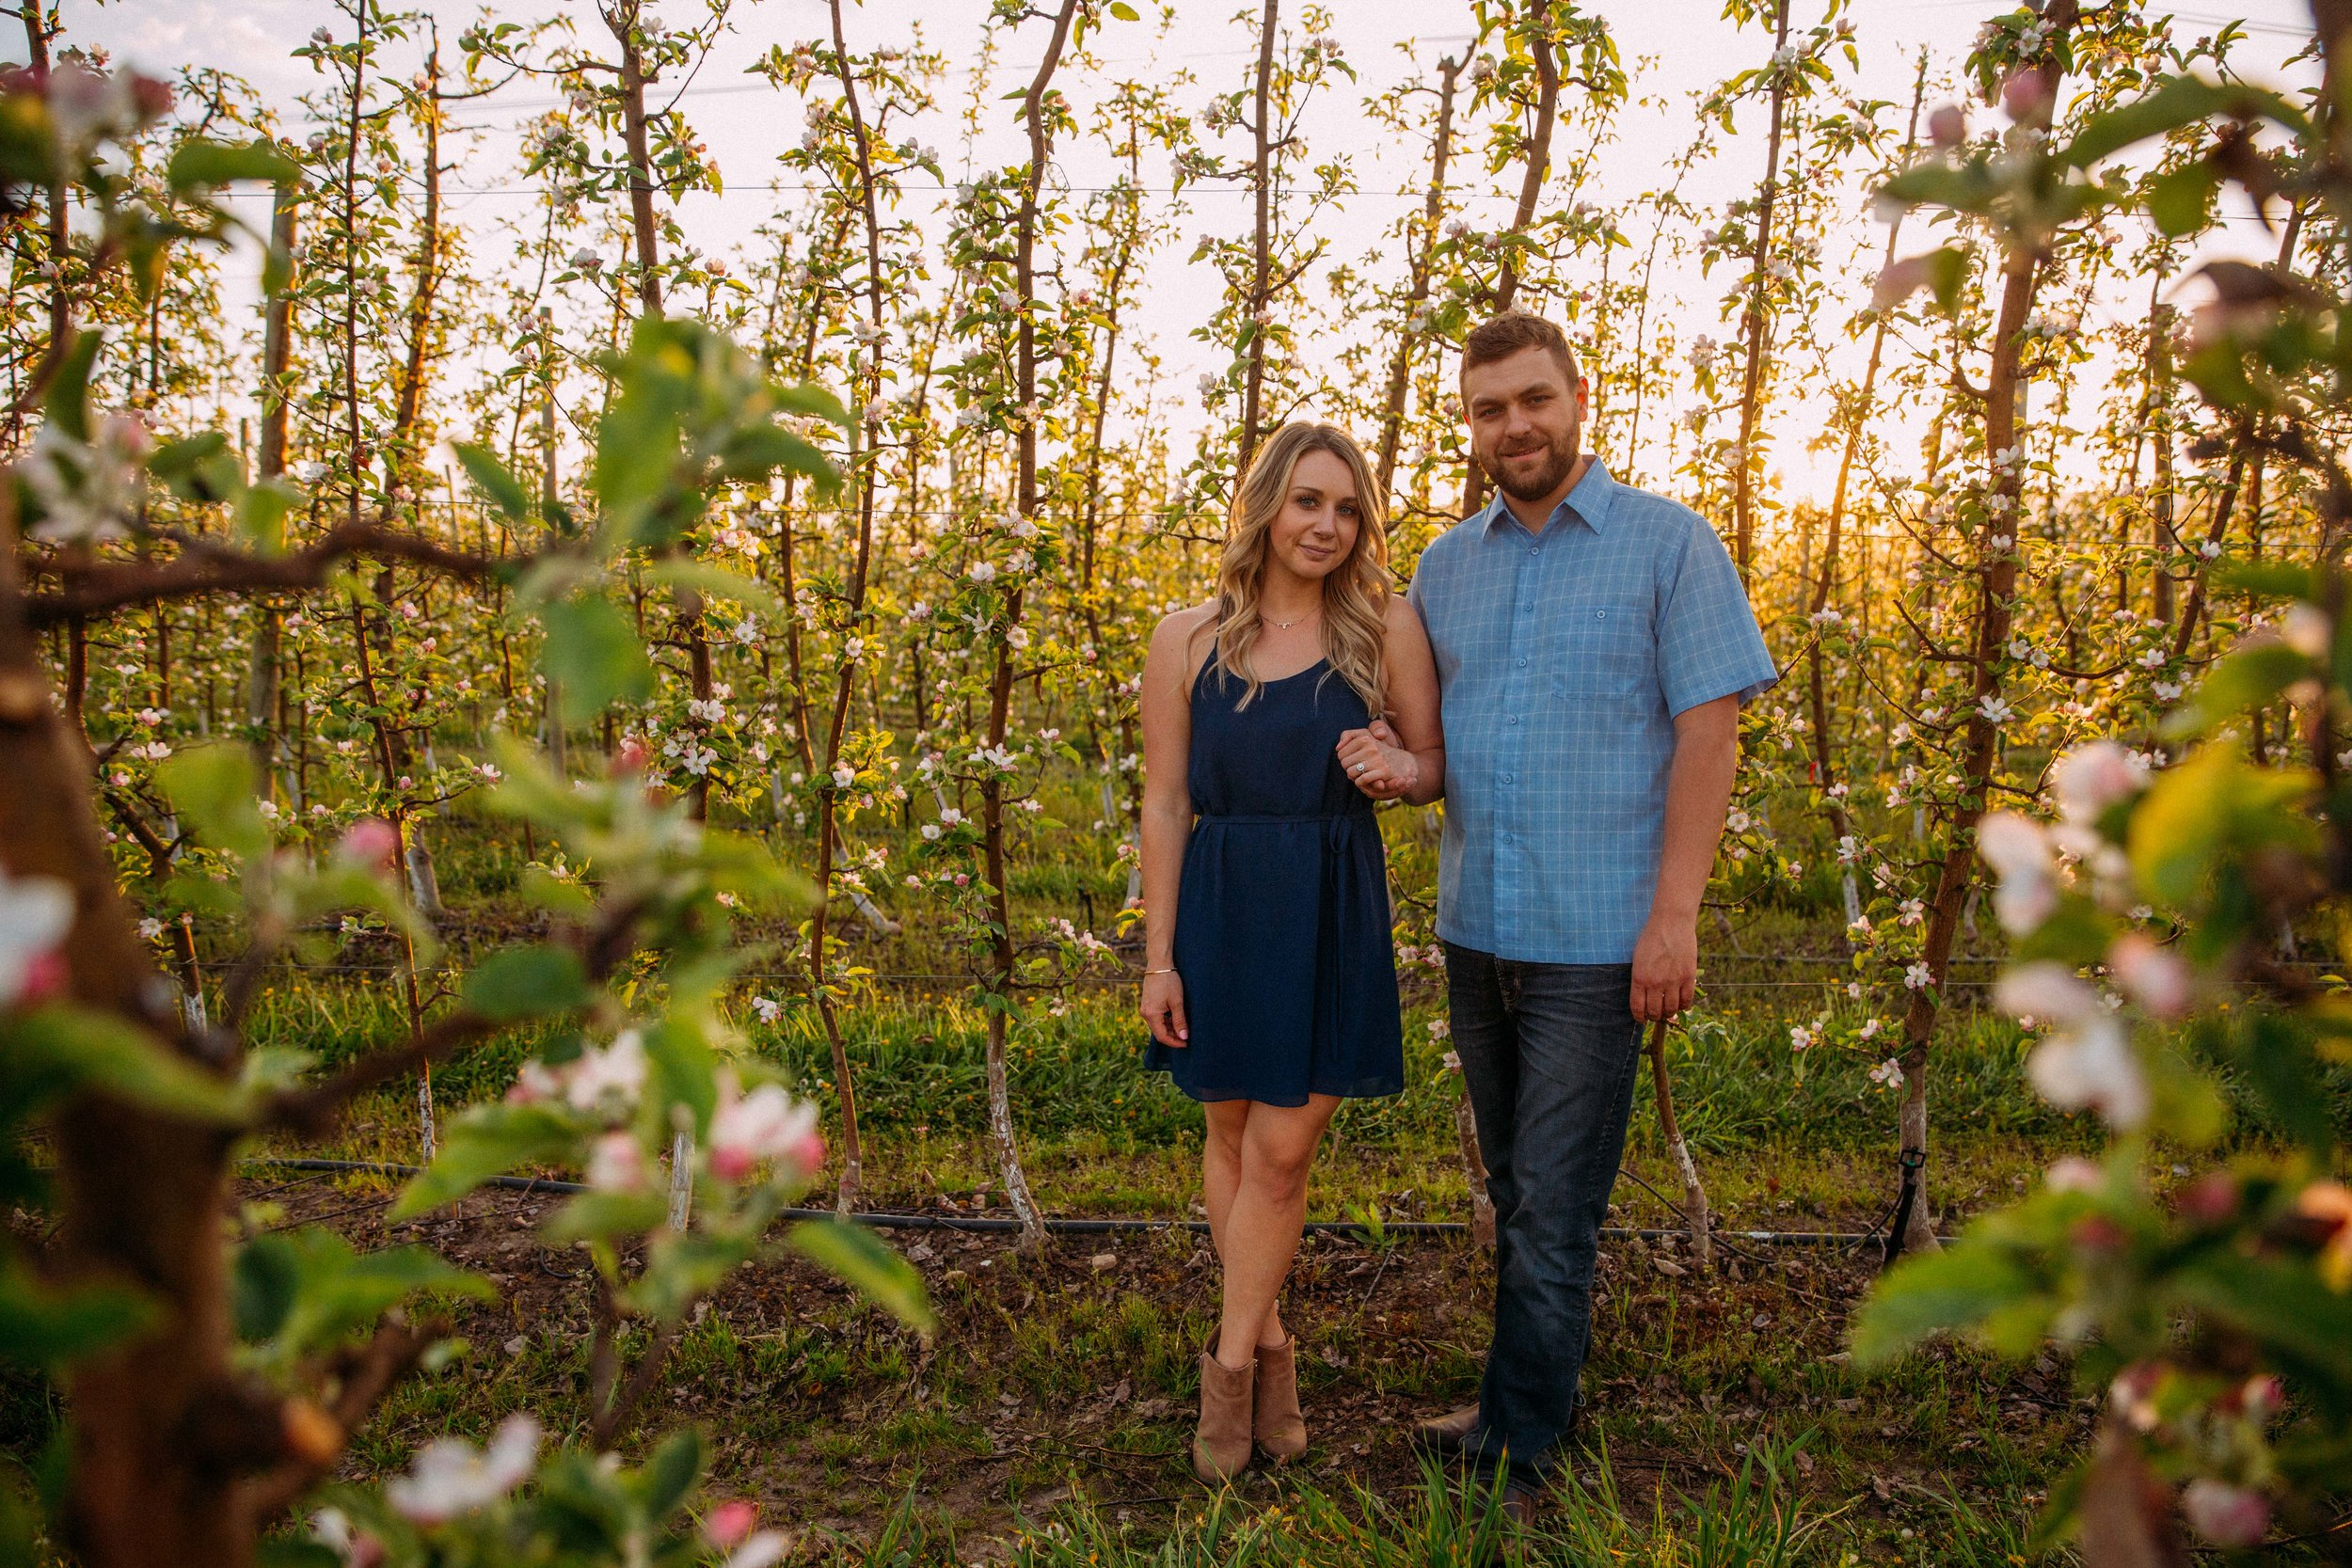 Apple tree engagement session in Kelowna